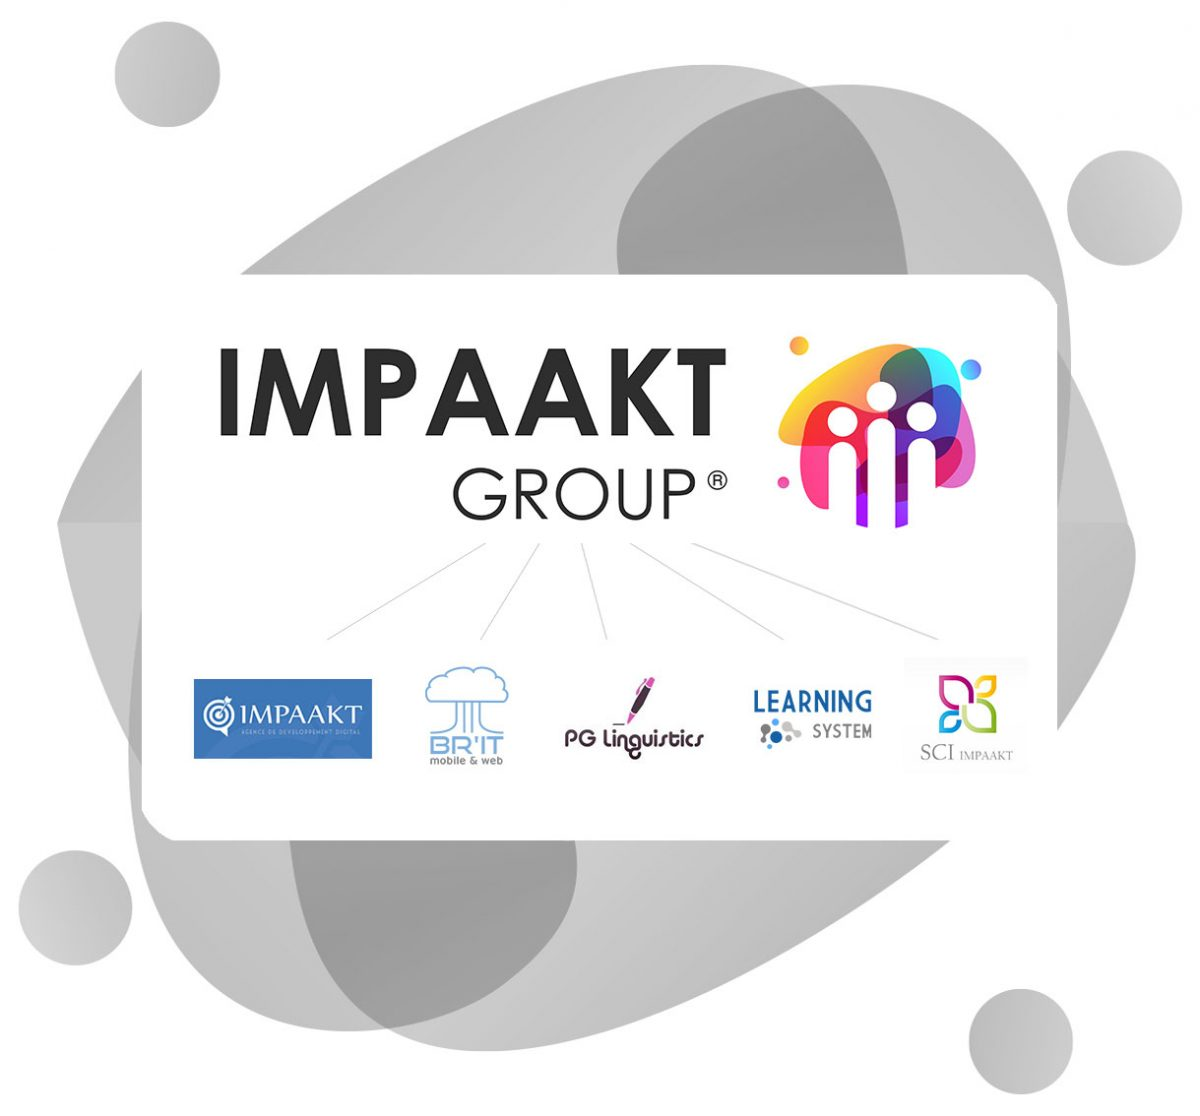 Groupe IMPAAKT Group